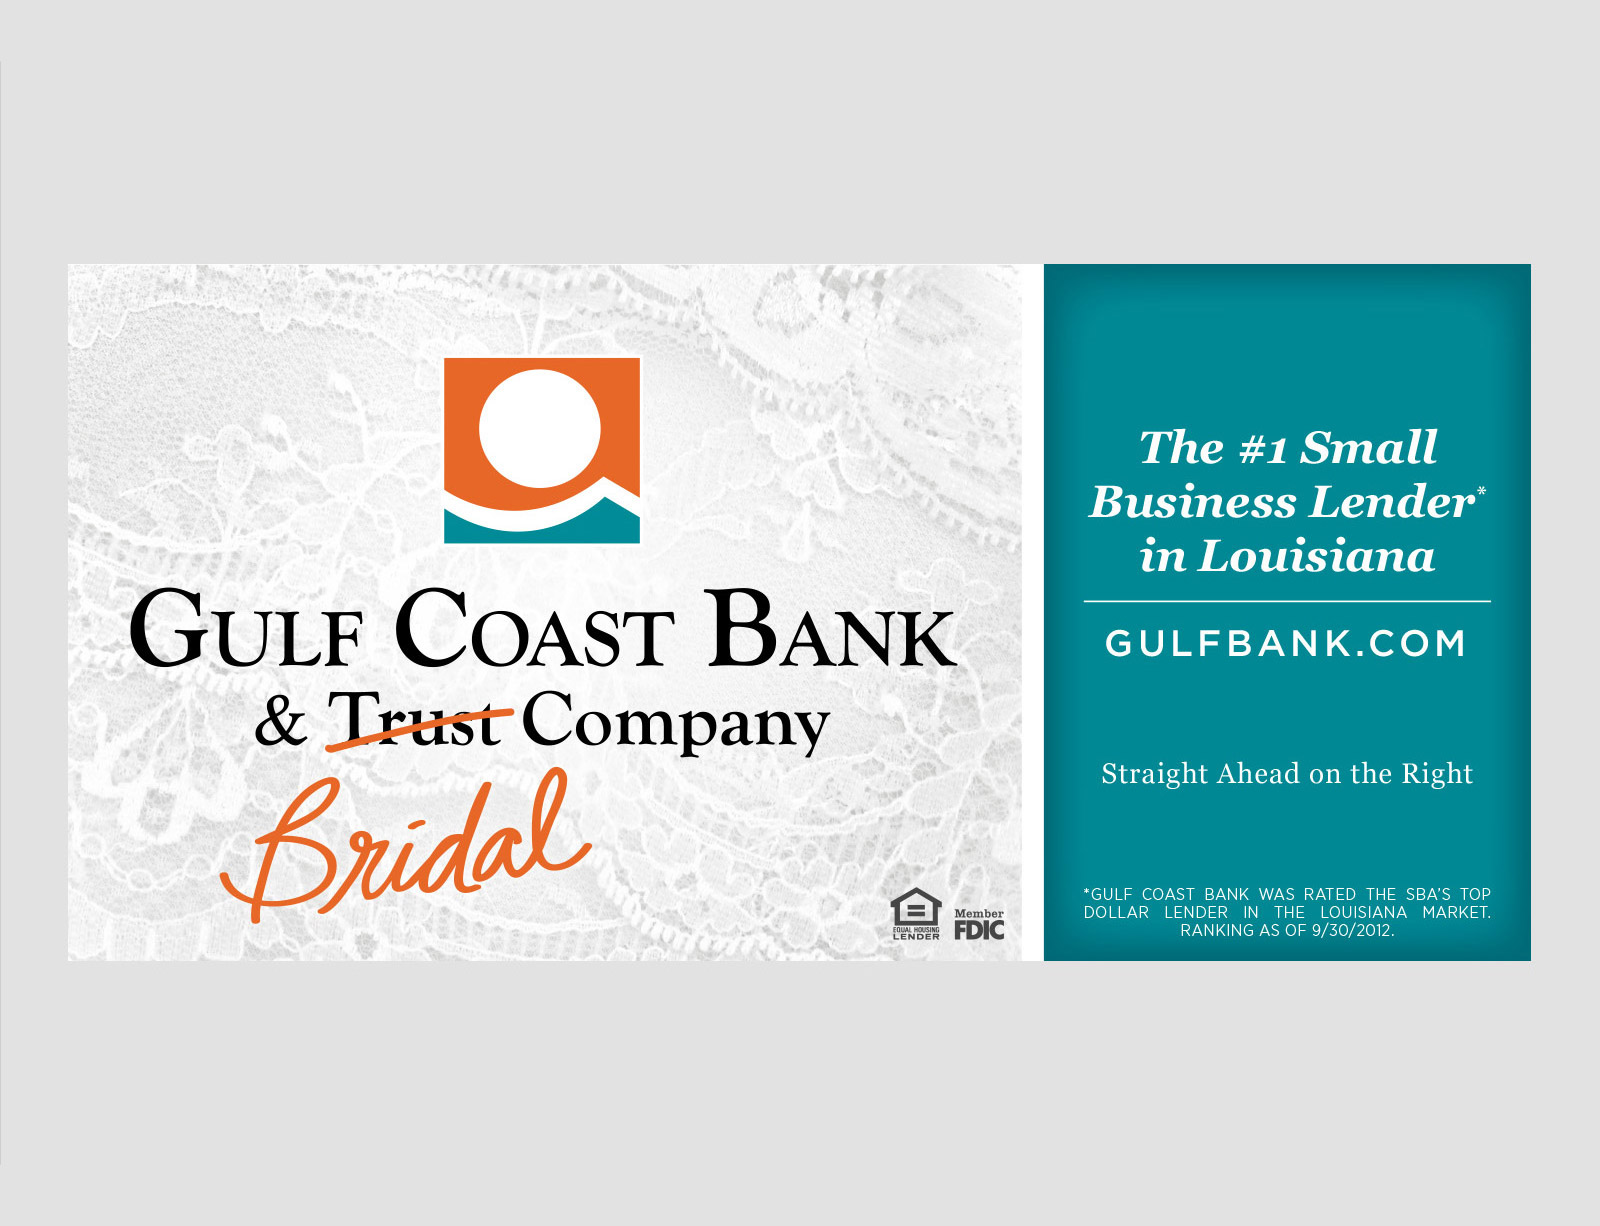 OUTDOOR_Gulf-Coast-Bank-Digital-Poster-Bridal.jpg